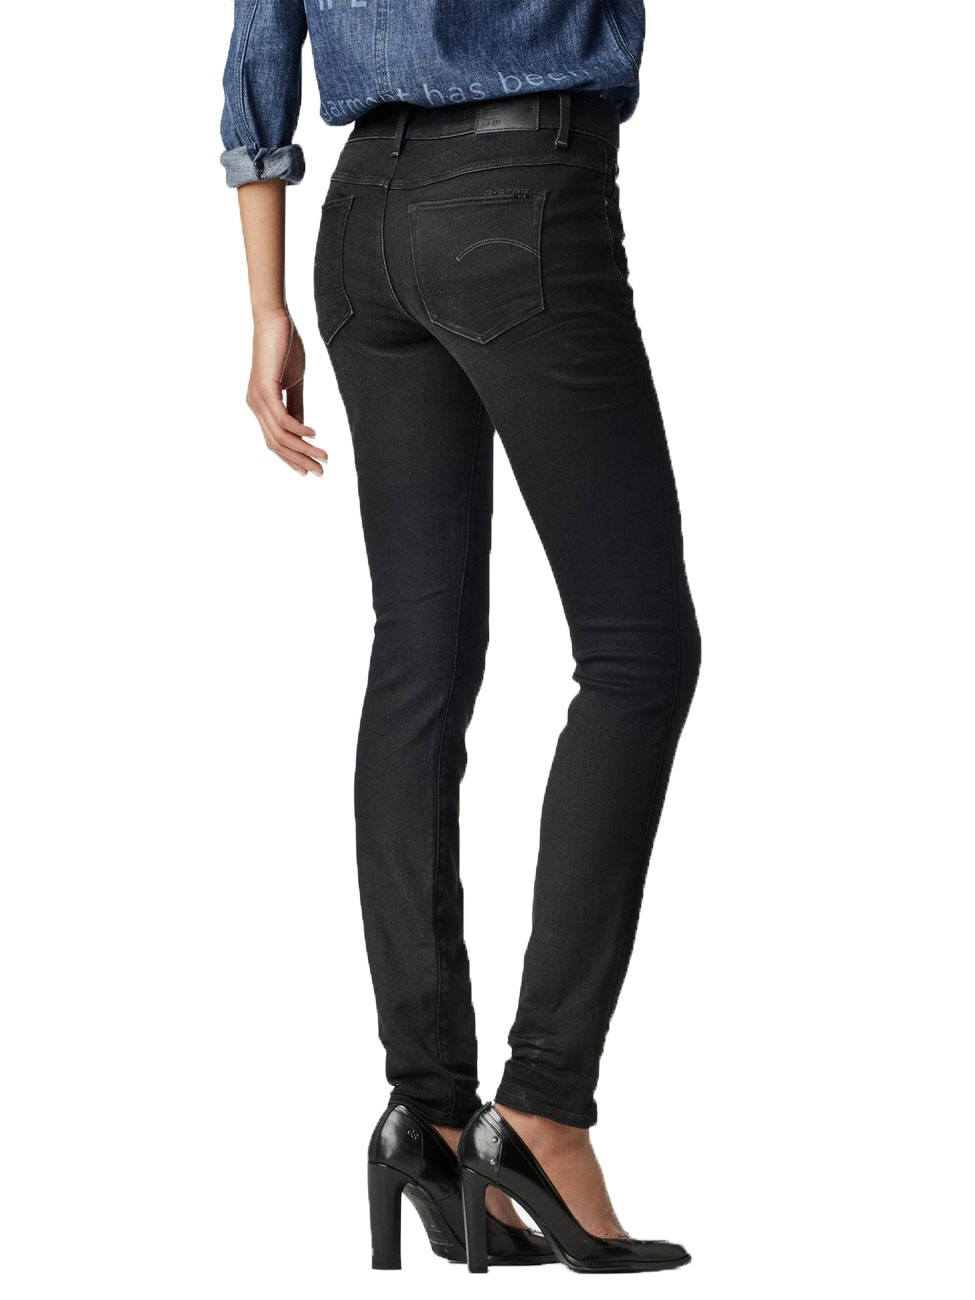 g star jeans 3301 contour damen high waist skinny jeans. Black Bedroom Furniture Sets. Home Design Ideas